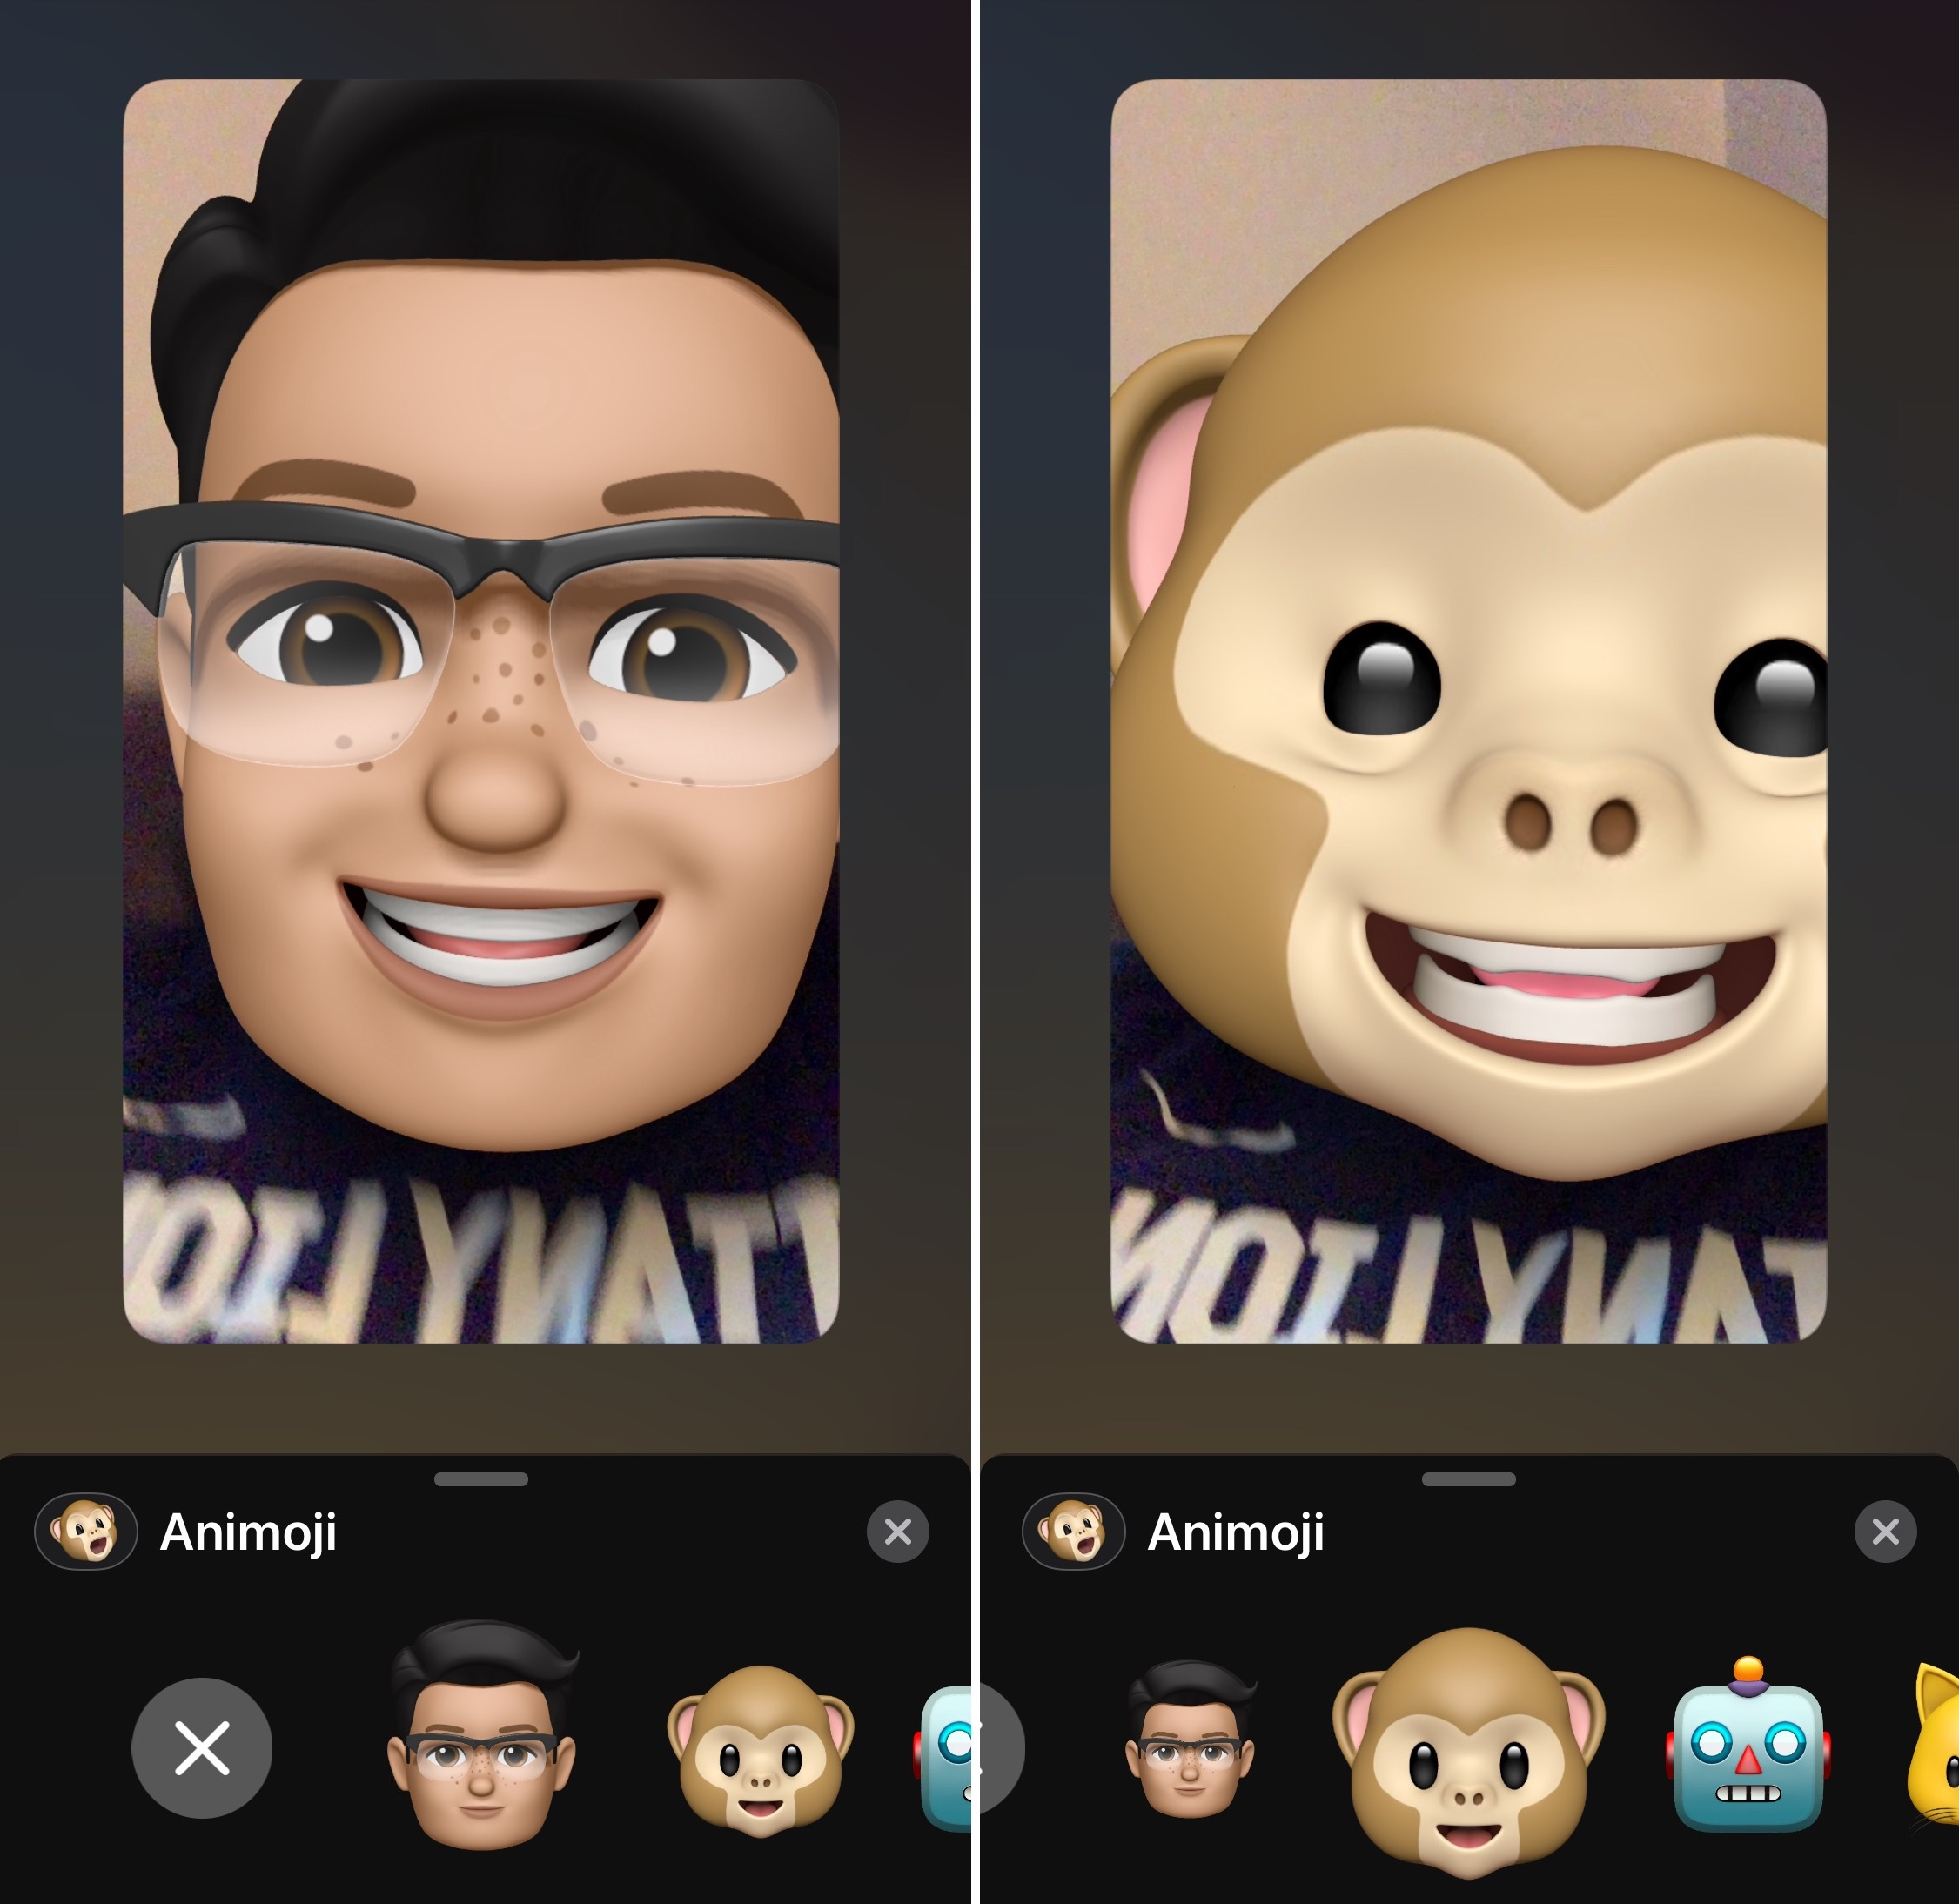 How to use FaceTime camera effects like Animoji and stickers